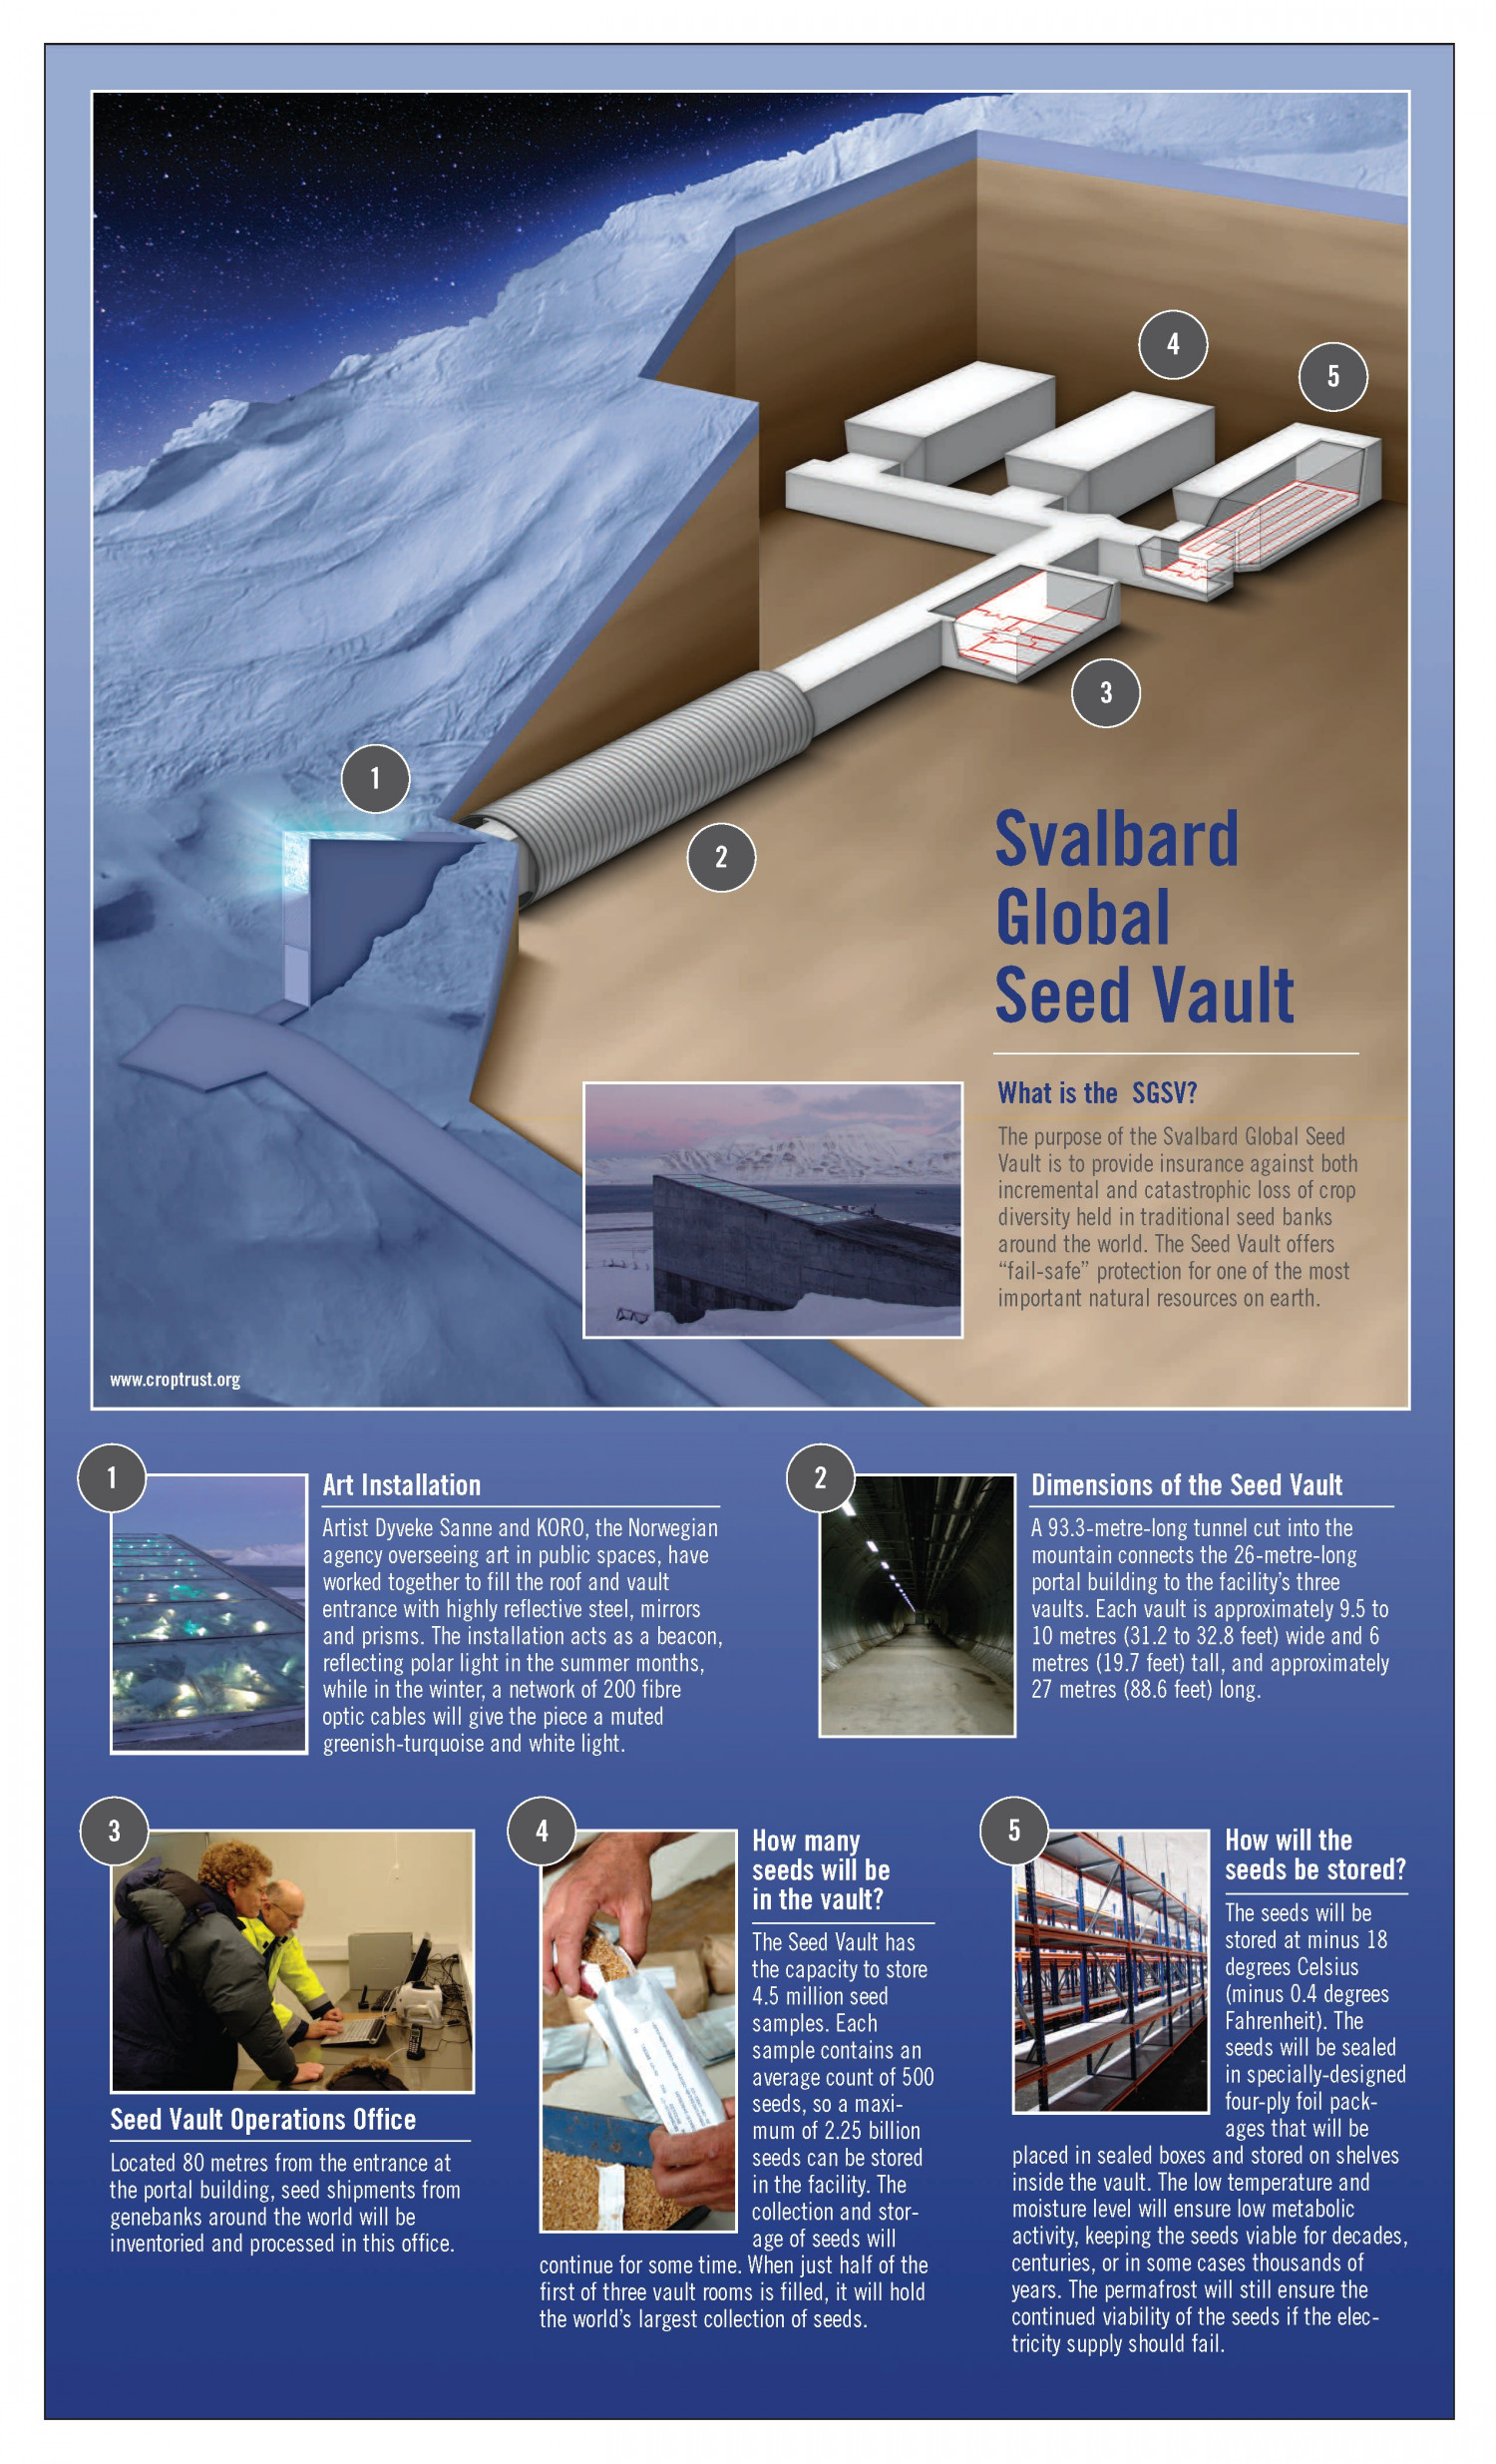 Svalbard Global Seed Vault Graphics Infographic